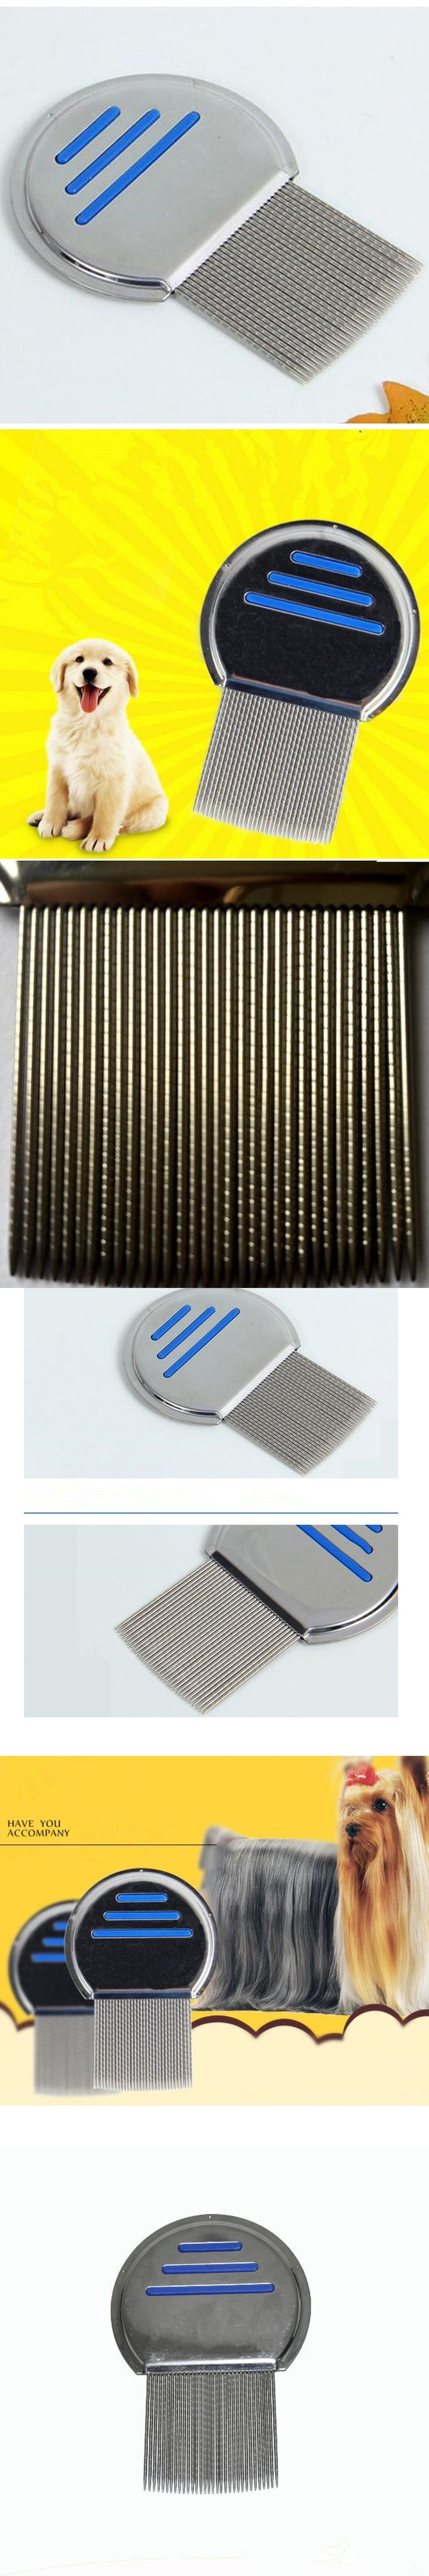 Top Qulaity Stainless Steel Terminator Lice Comb Nit Kids Pets Dogs Hair Rid Headlice Super Density Teeth Remove Nits Comb